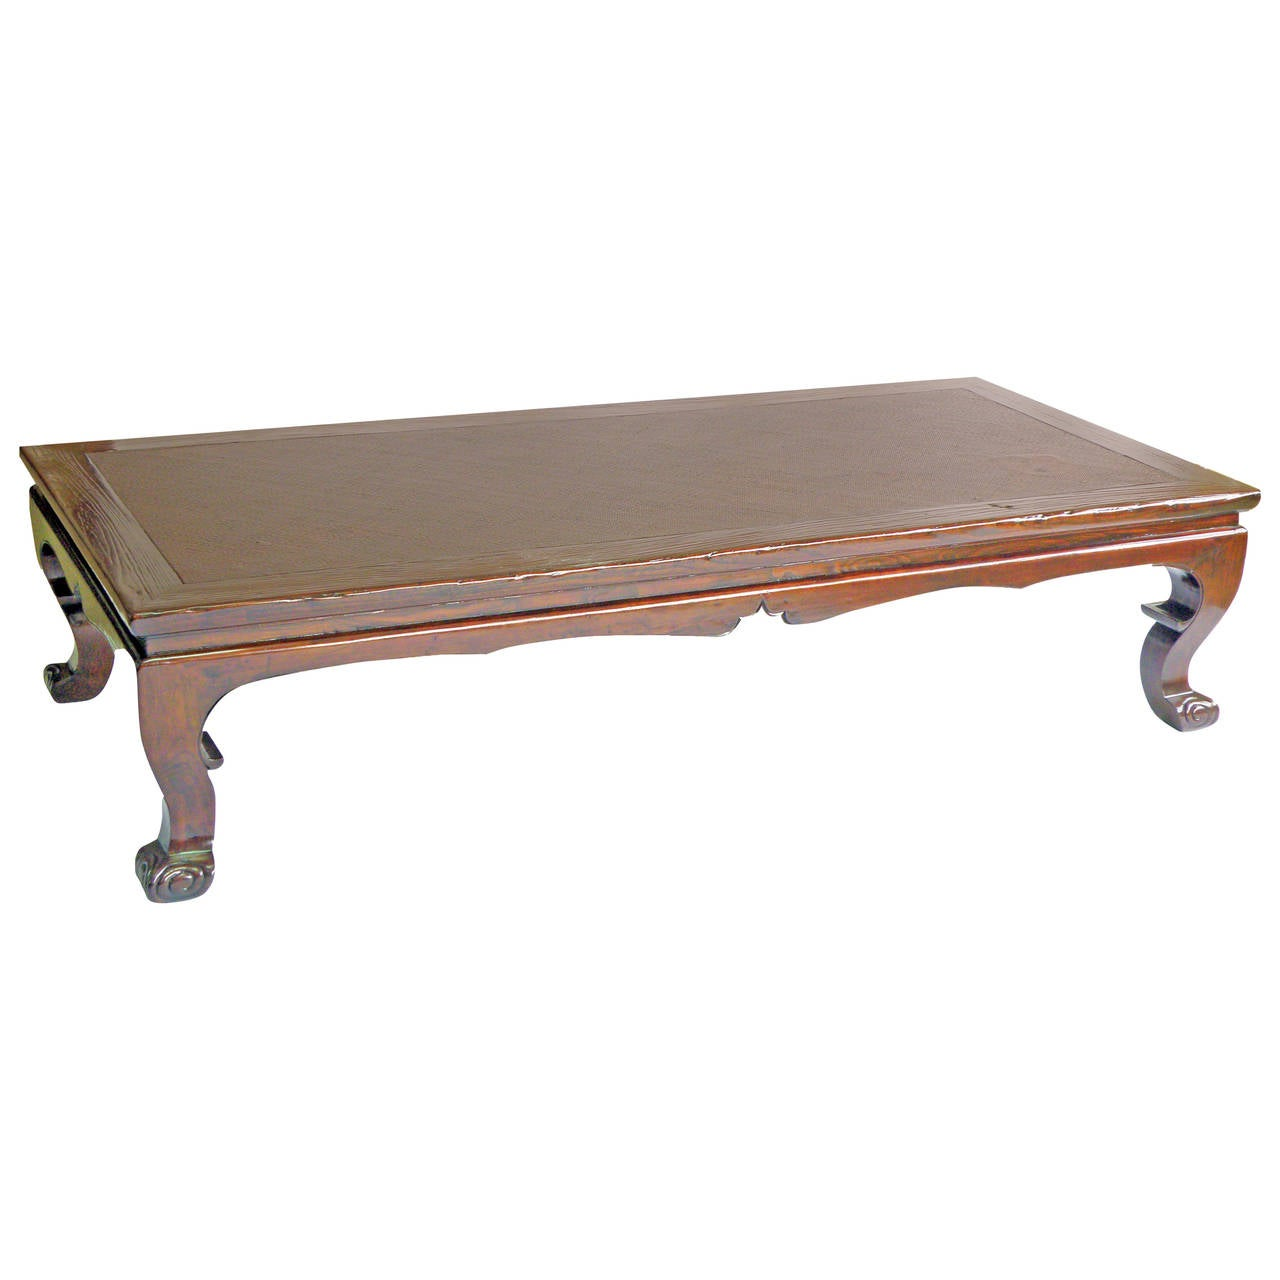 Large Antique Day Bed Low Table Or Coffee Table With Cabriole Legs Chinoiserie For Sale At 1stdibs